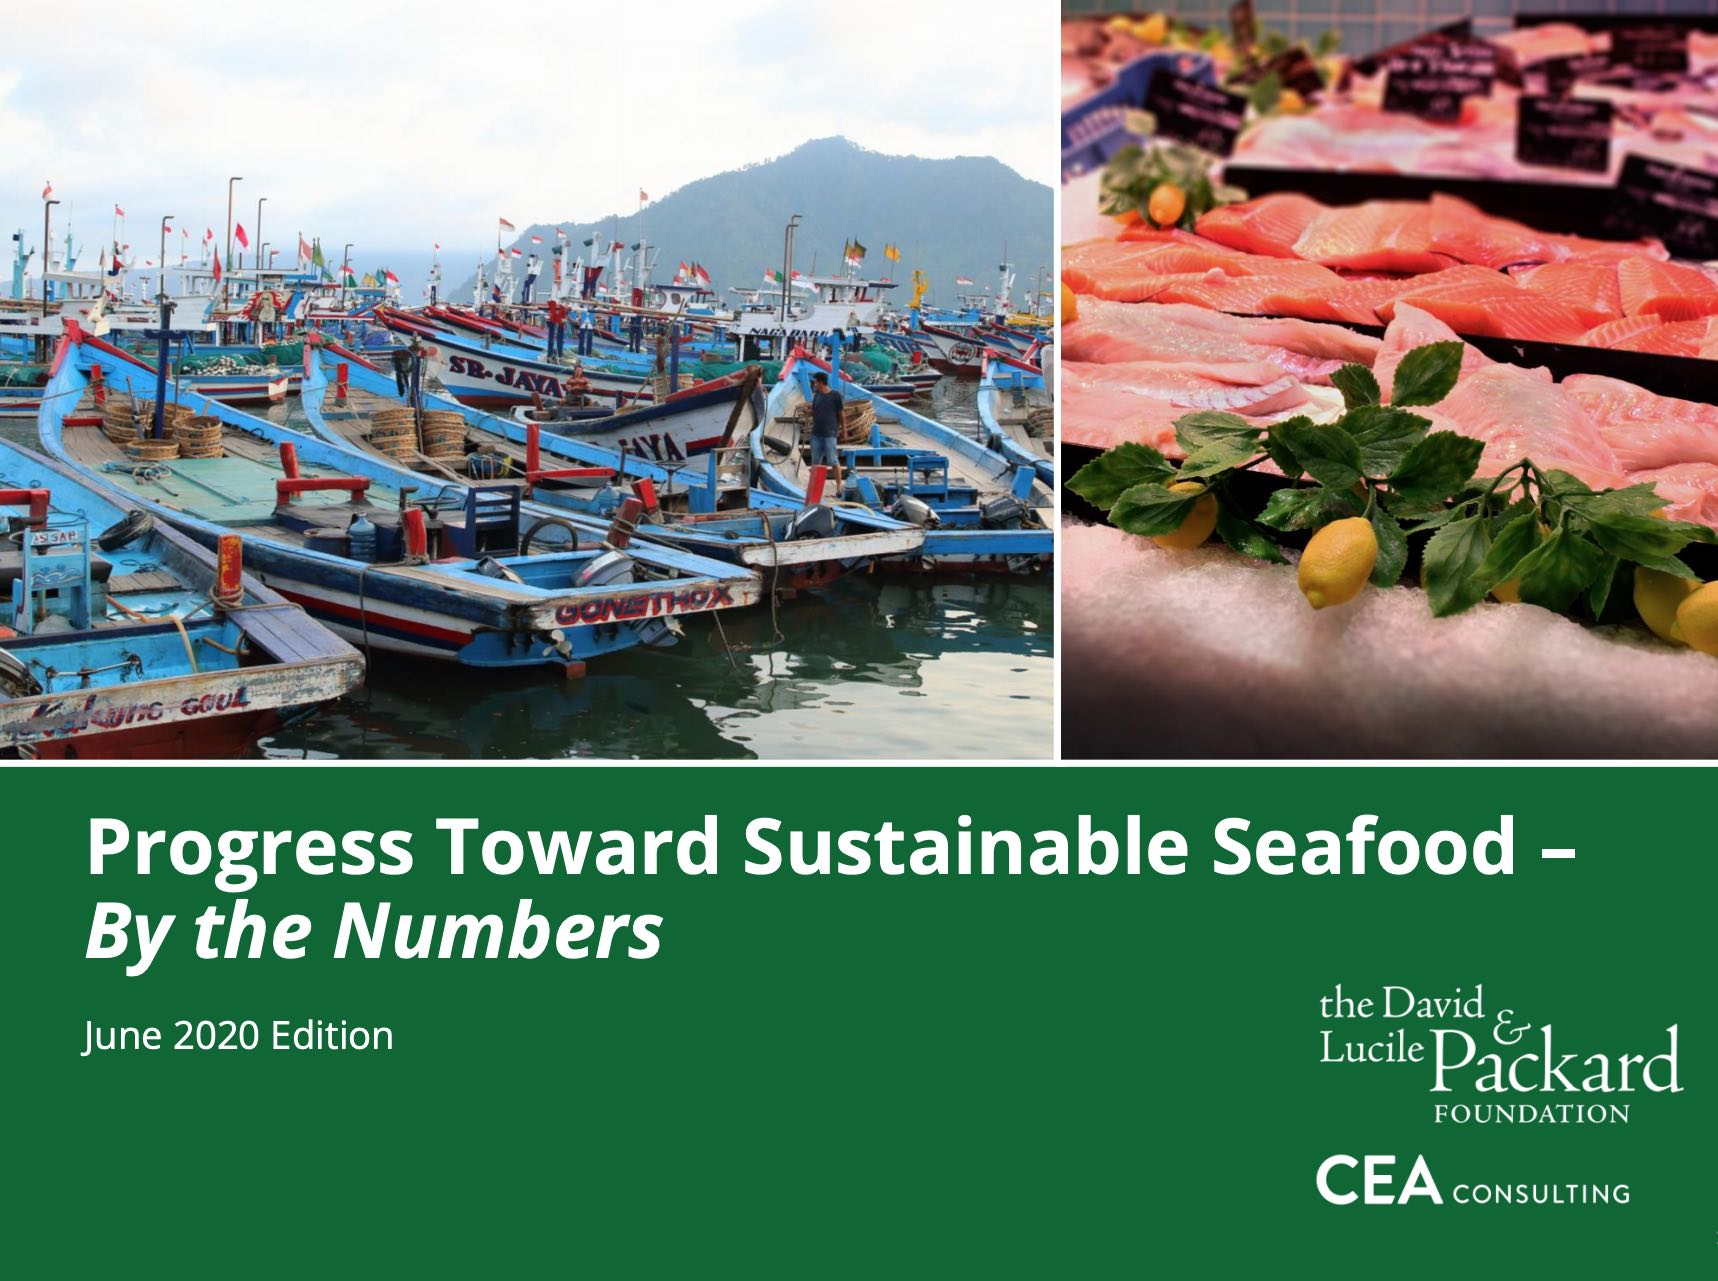 Progress Toward Sustainable Seafood – By the Numbers